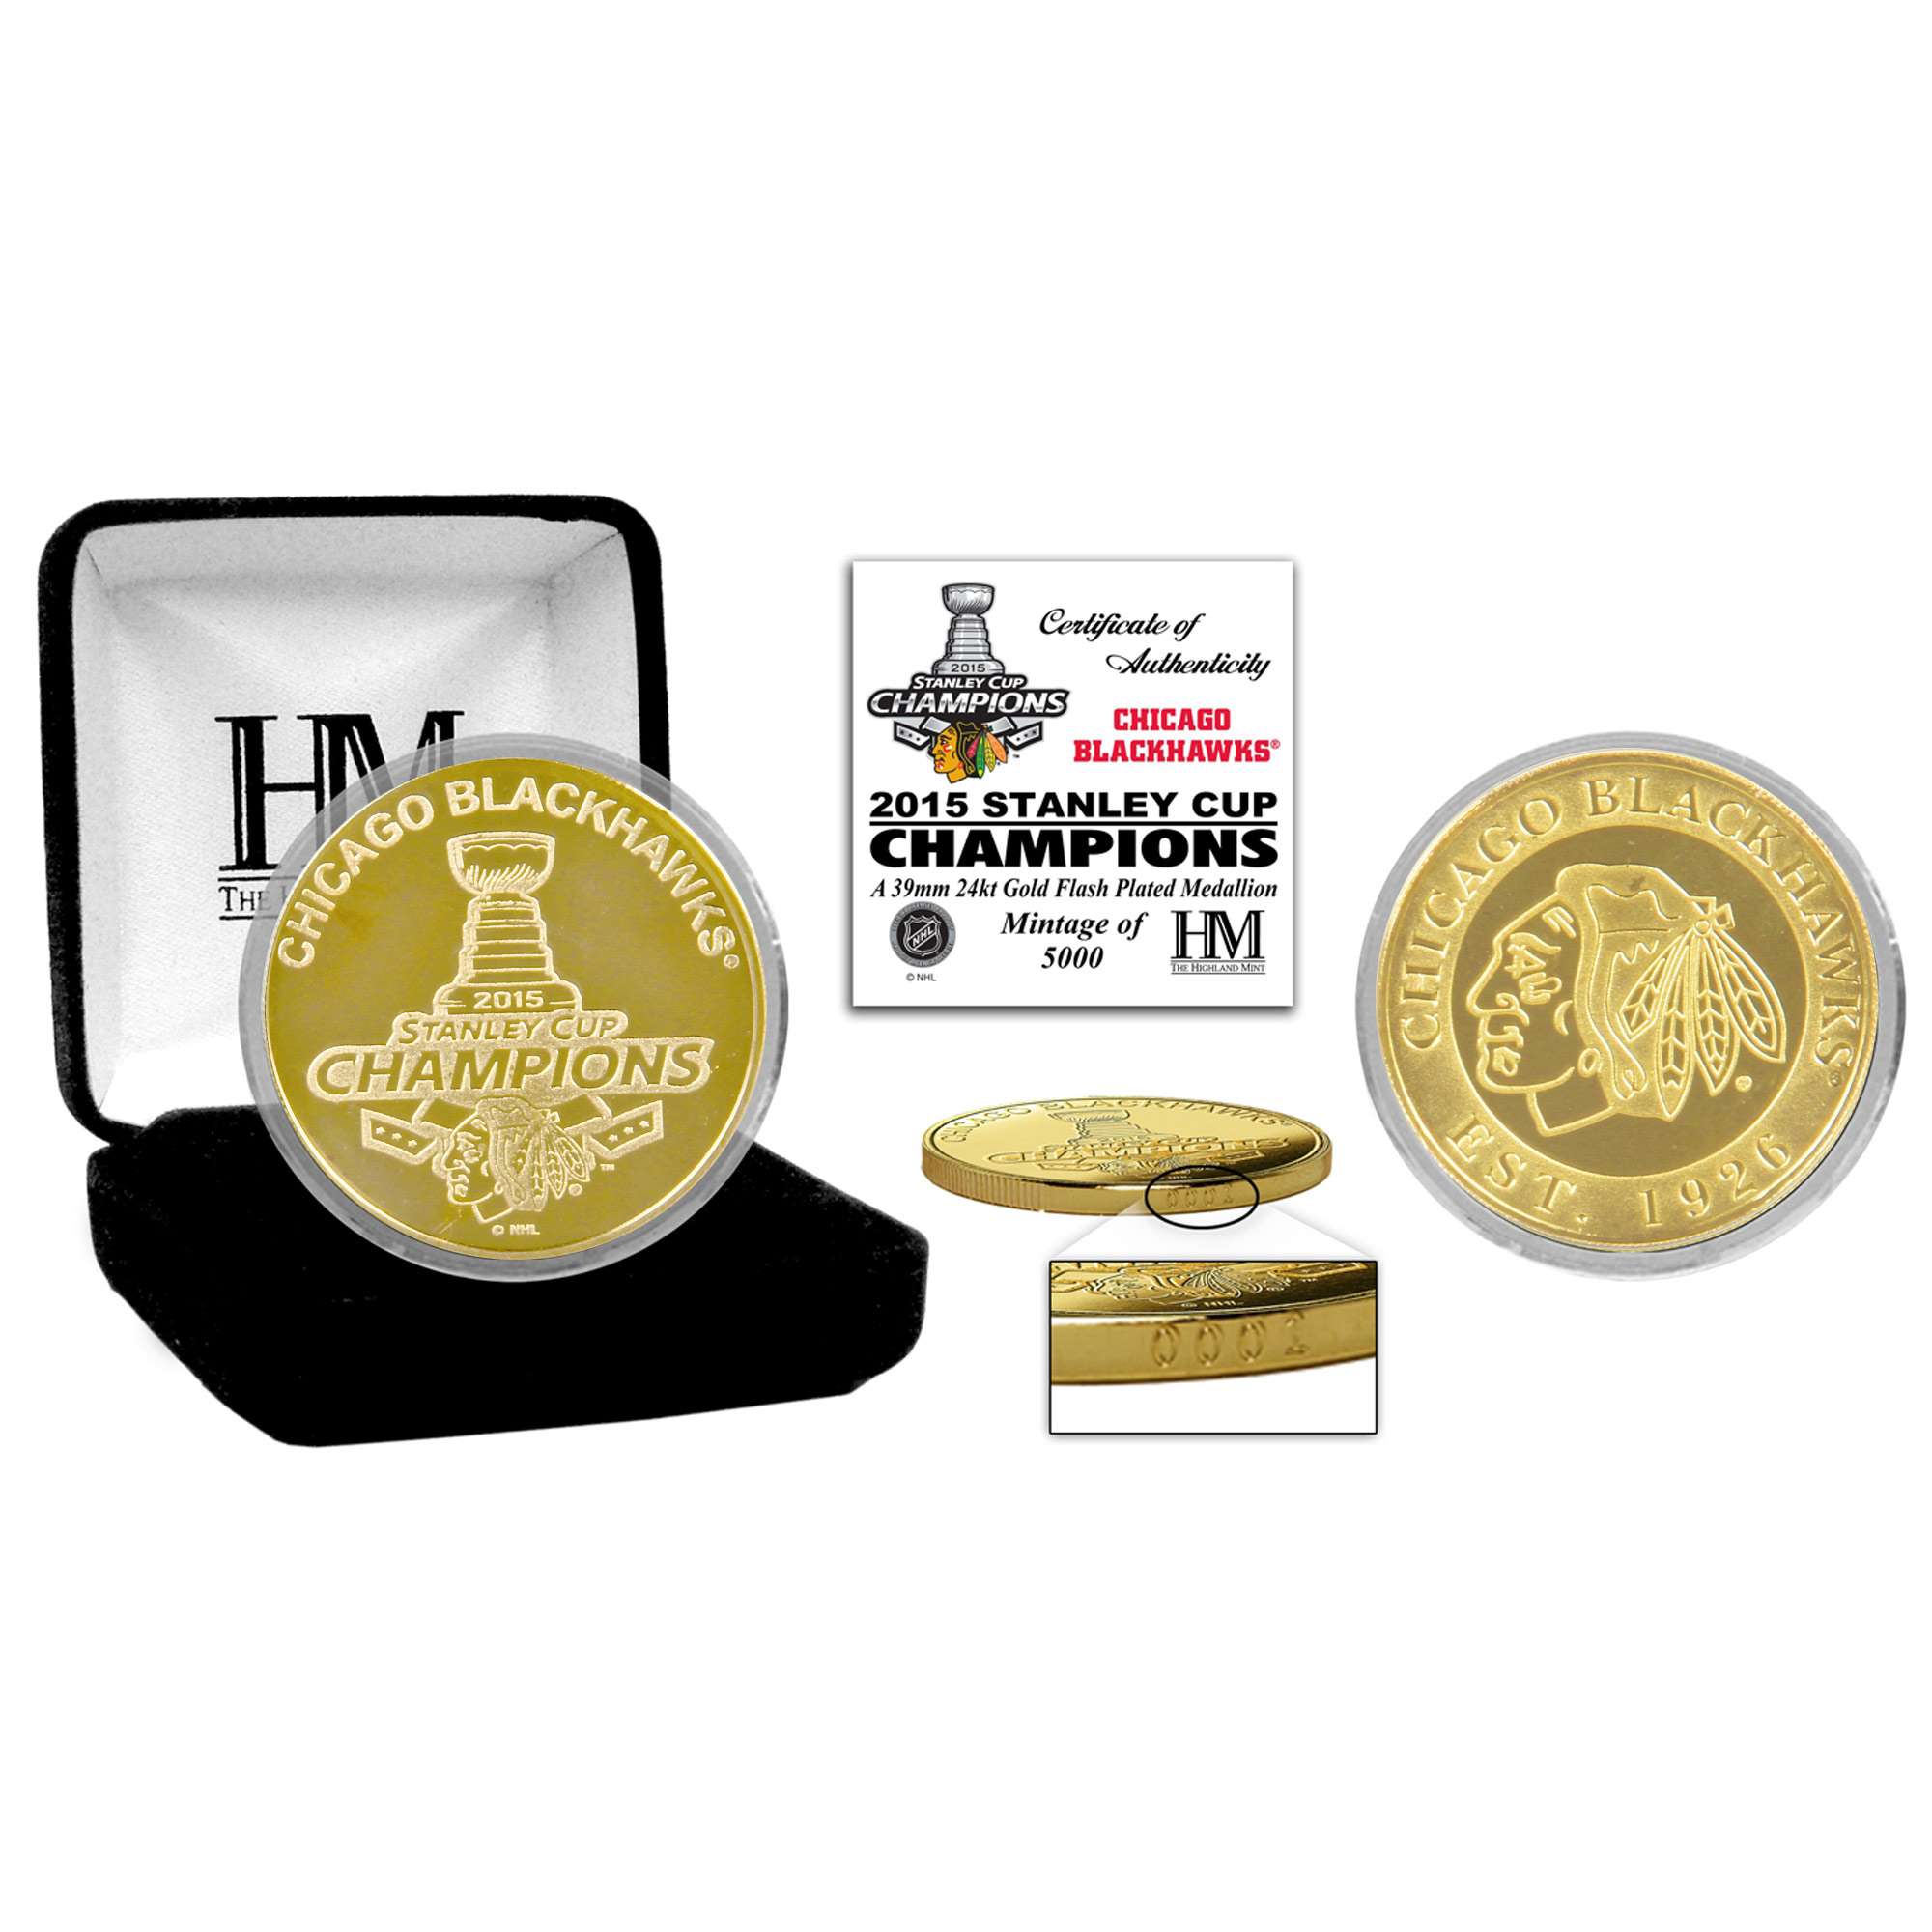 Chicago Blackhawks 2015 Stanley Cup Champions Gold Mint Coin - No ...